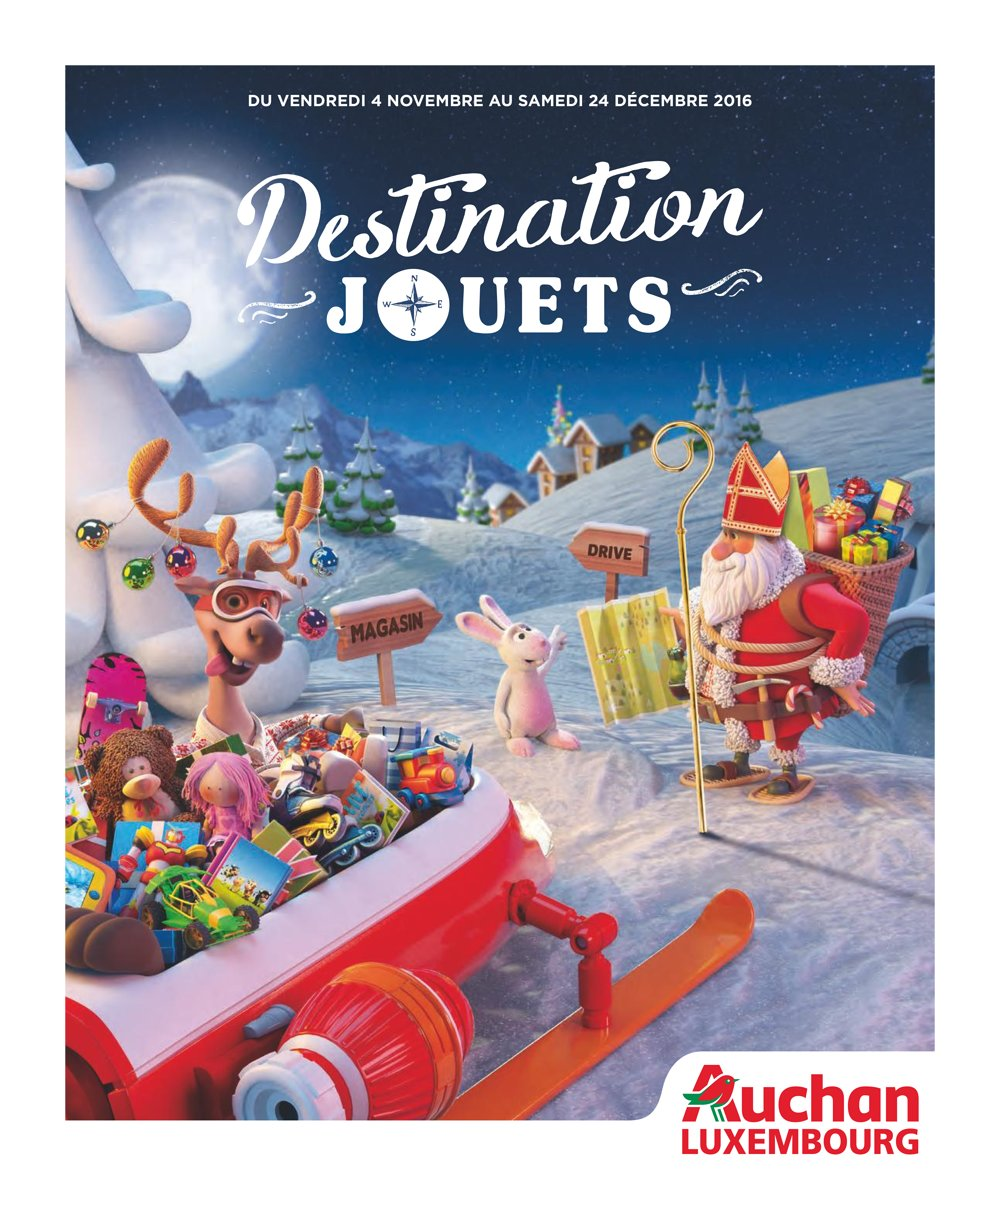 catalogue de noel 2018 auchan Catalogue Auchan Luxembourg Noël 2016 | Catalogue de jouets catalogue de noel 2018 auchan